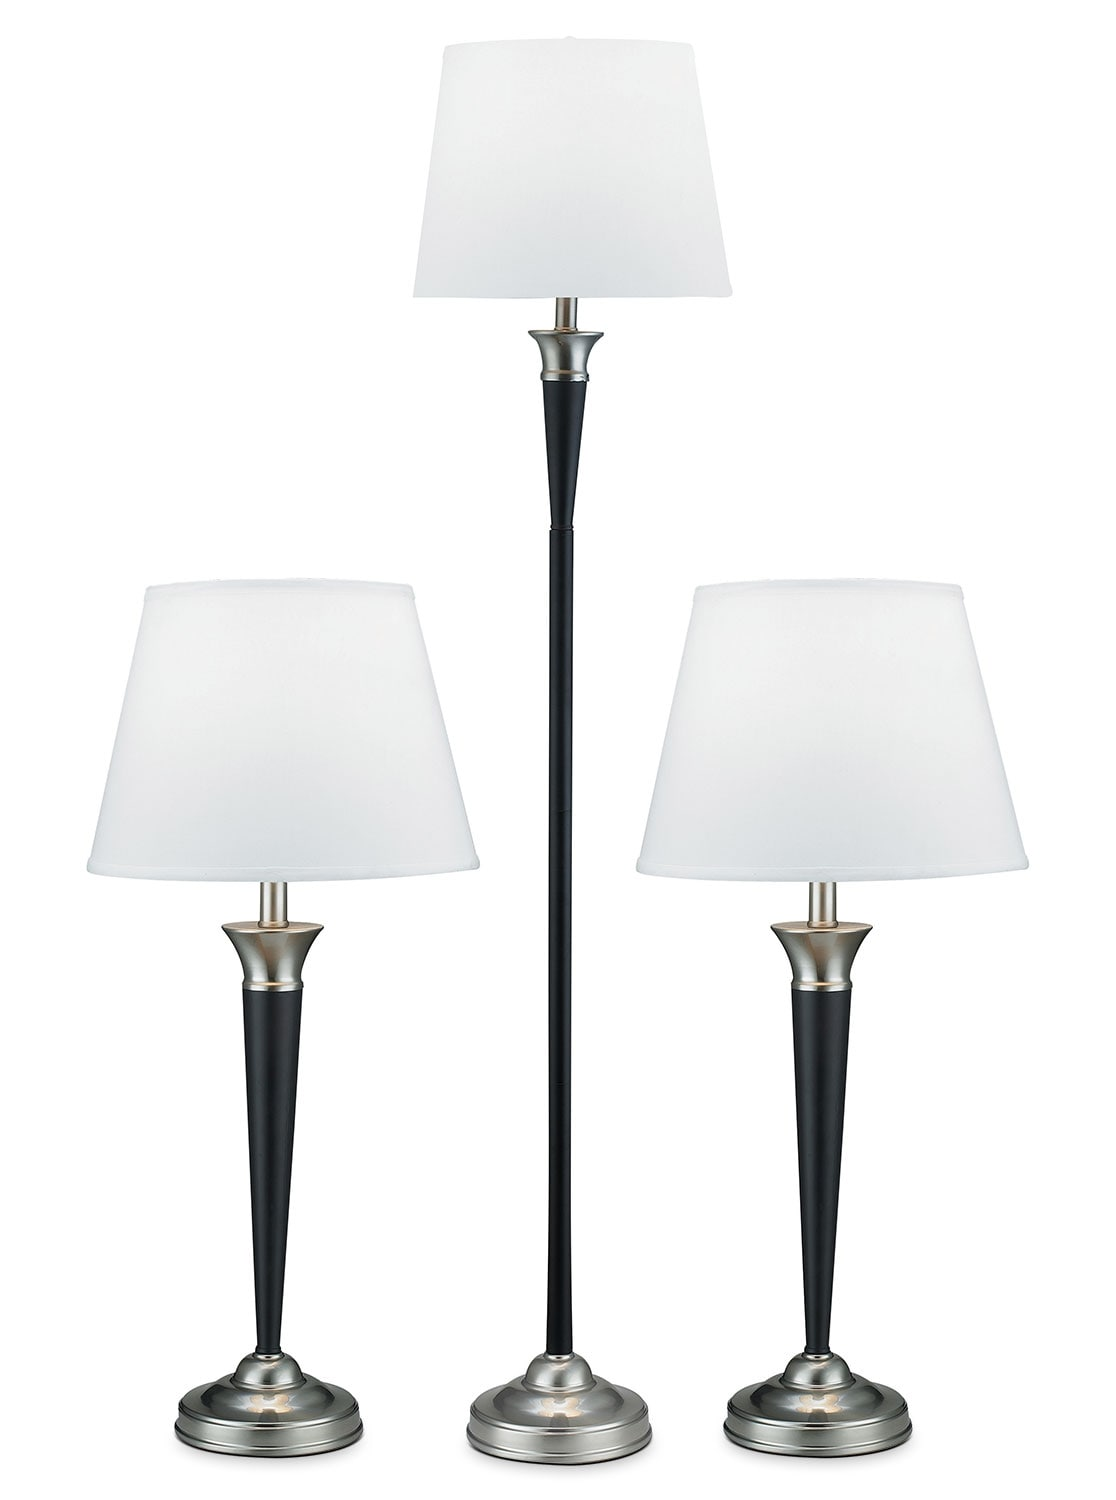 Home Accessories - Brushed Steel and Espresso 3-Piece Floor and Two Table Lamps Set